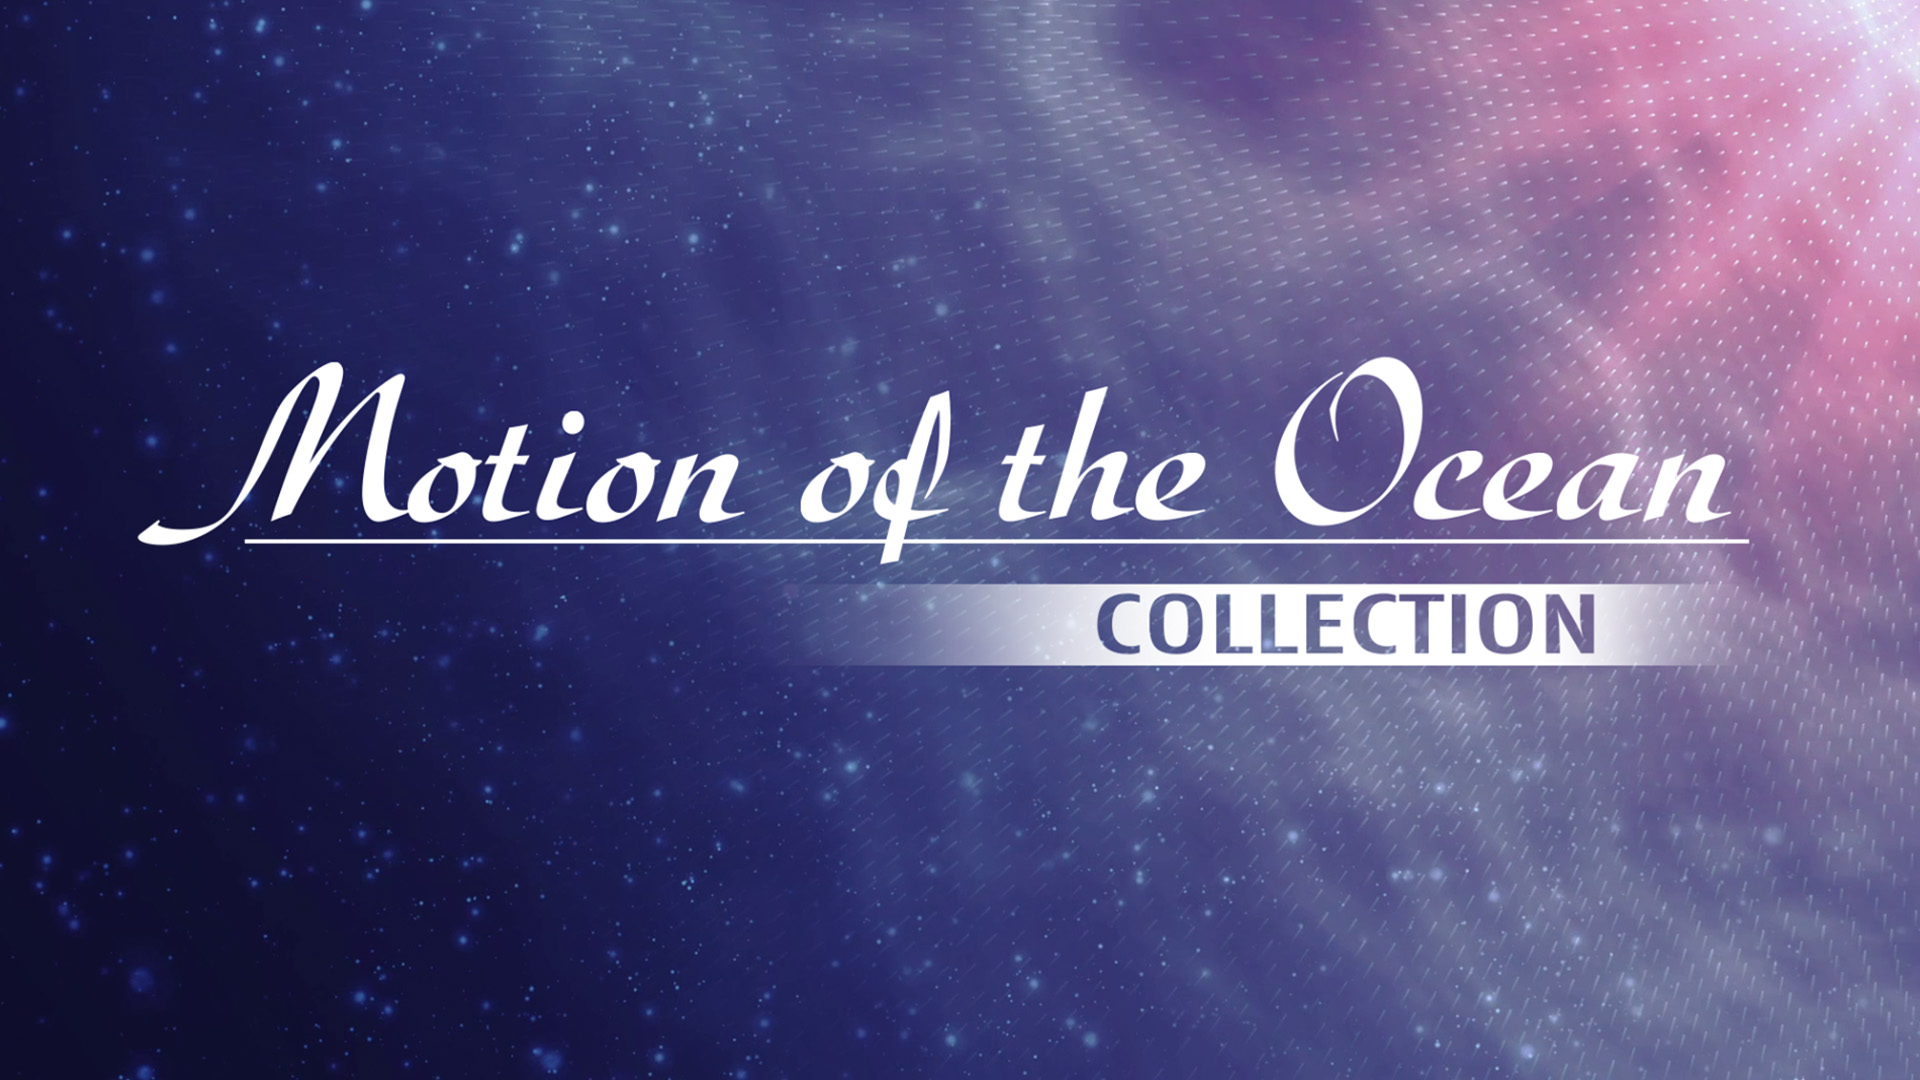 MOTION OF THE OCEAN COLLECTION